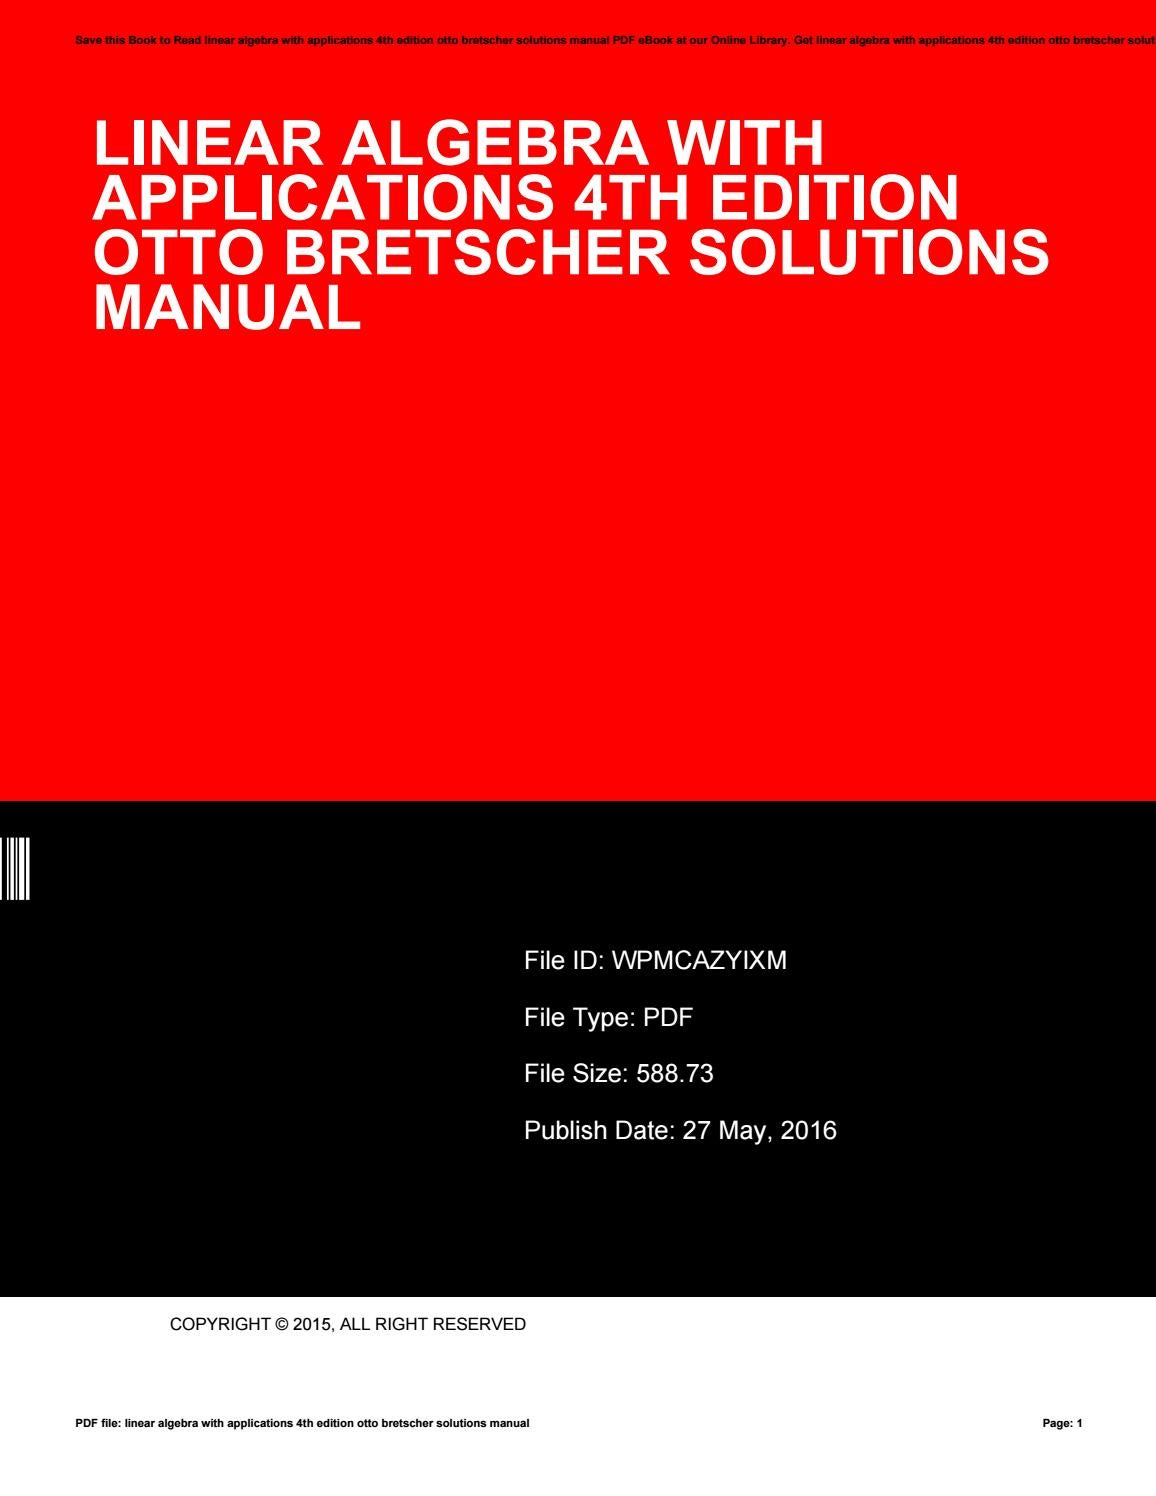 Linear algebra with applications 4th edition otto bretscher solutions manual  by xf341 - issuu